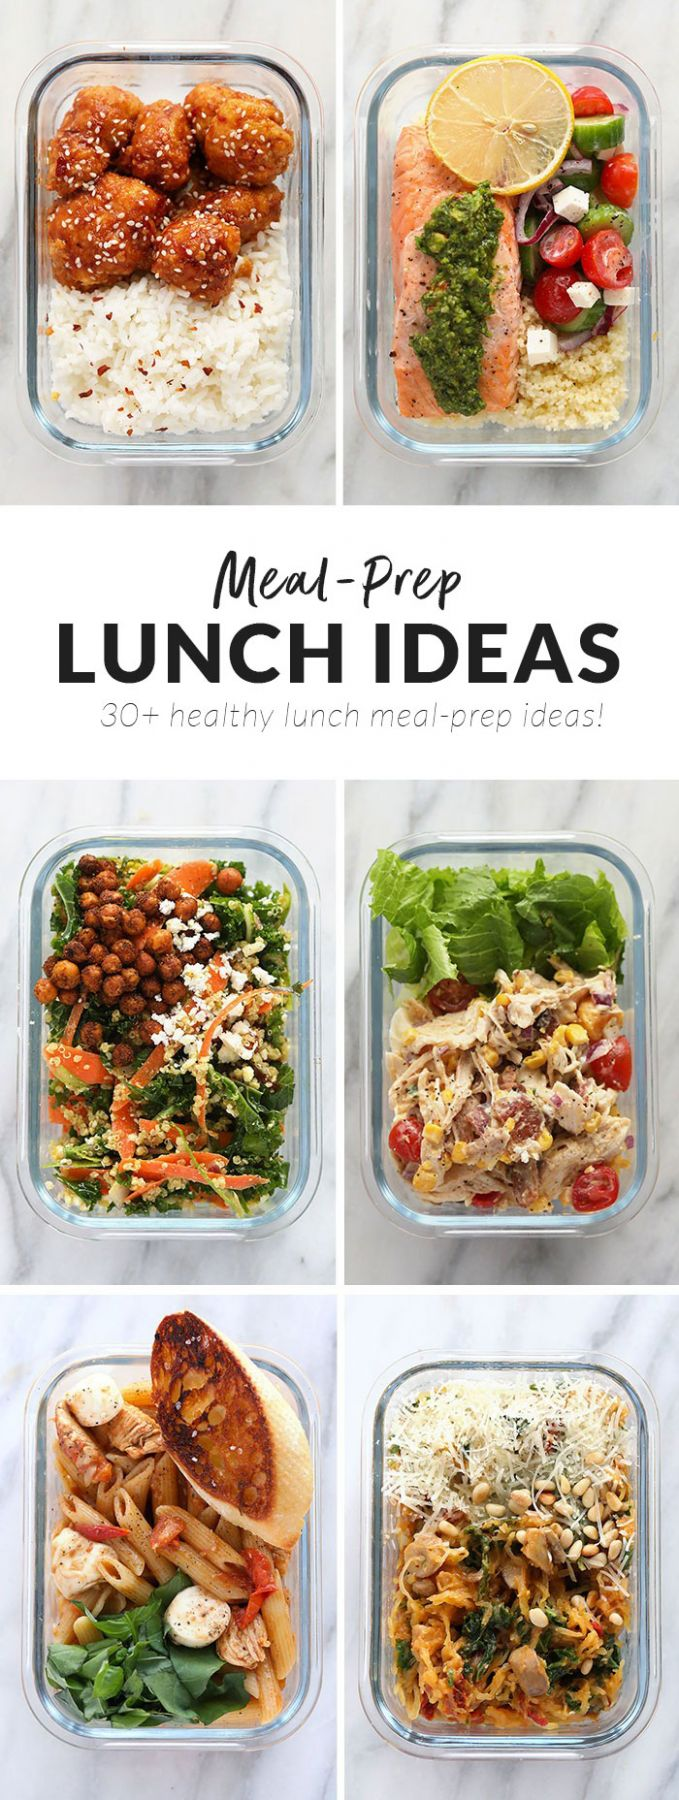 Delicious Healthy Lunch Ideas (10+ Lunch Meal Prep Ideas) - Fit ..